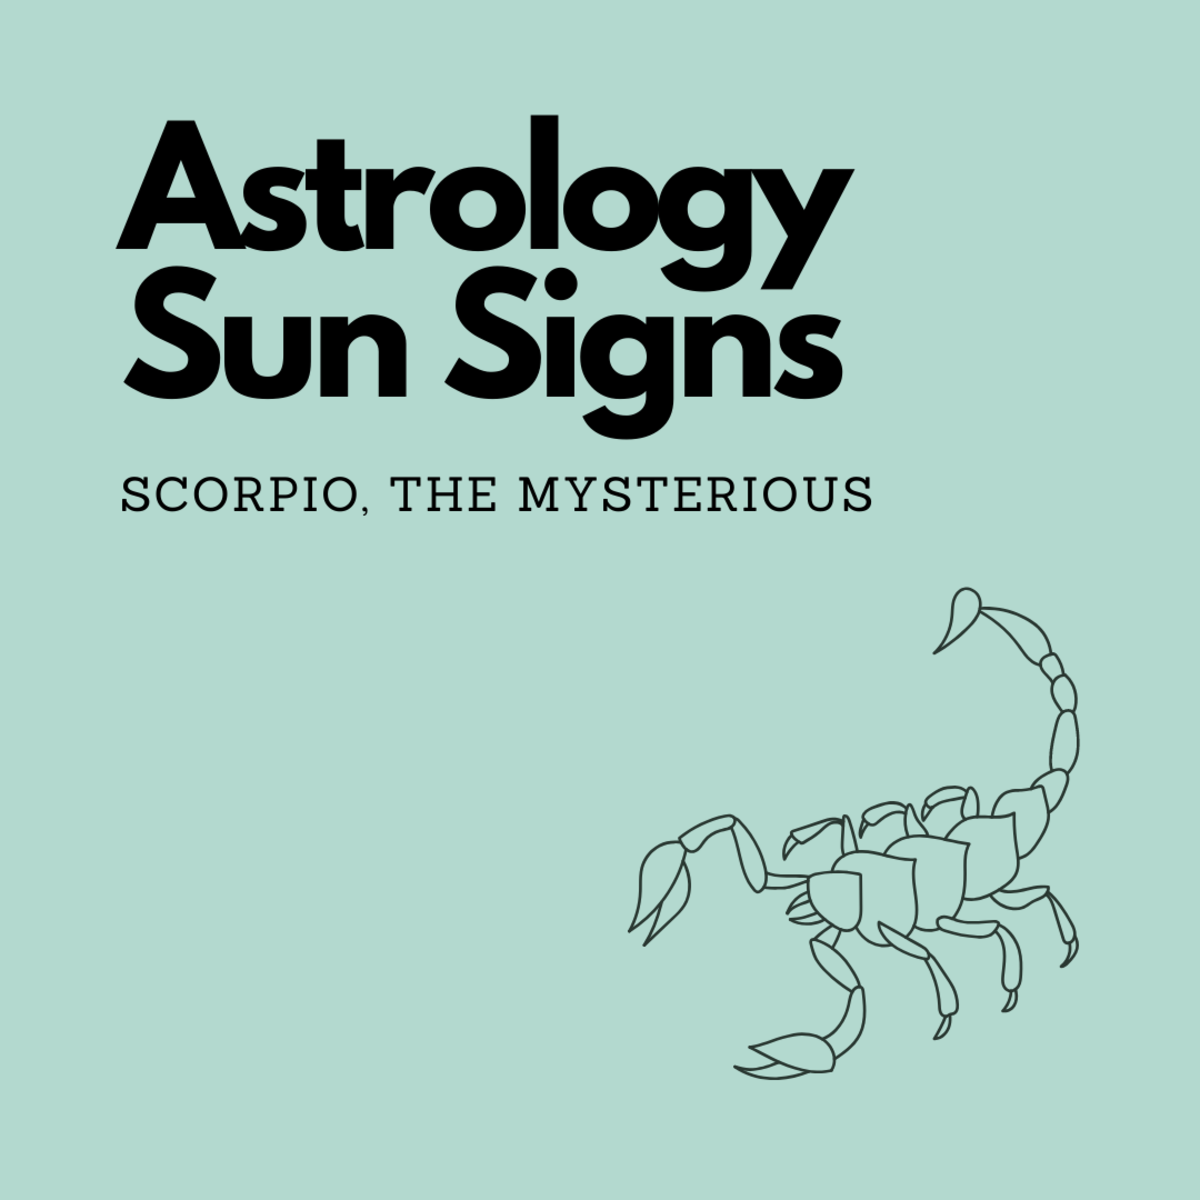 Astrology Sun Signs: Scorpio, the Mysterious